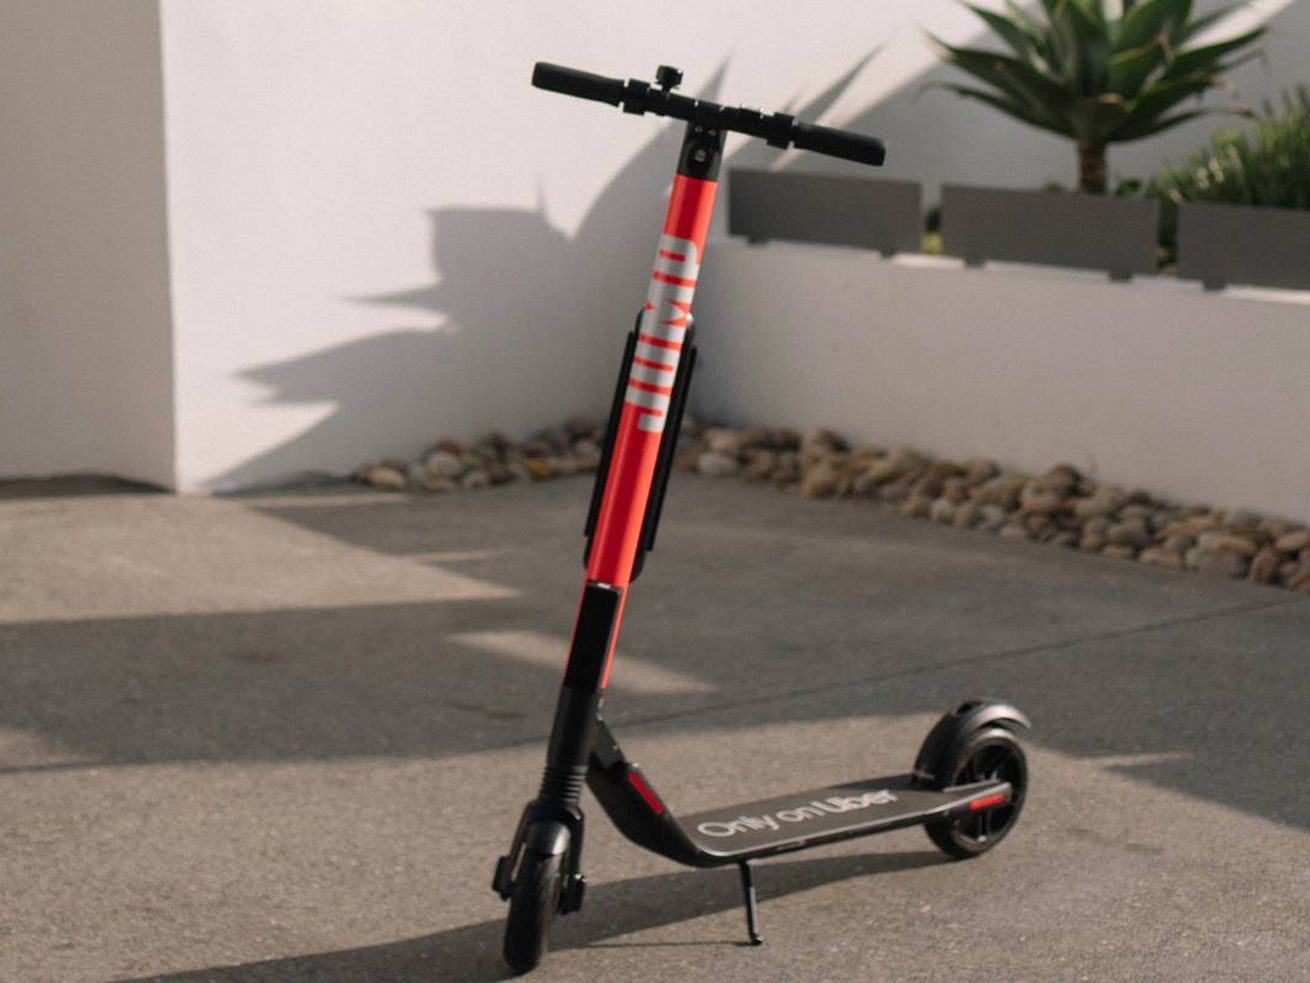 The newest scooters on LA streets are from Jump, a company owned by Uber.